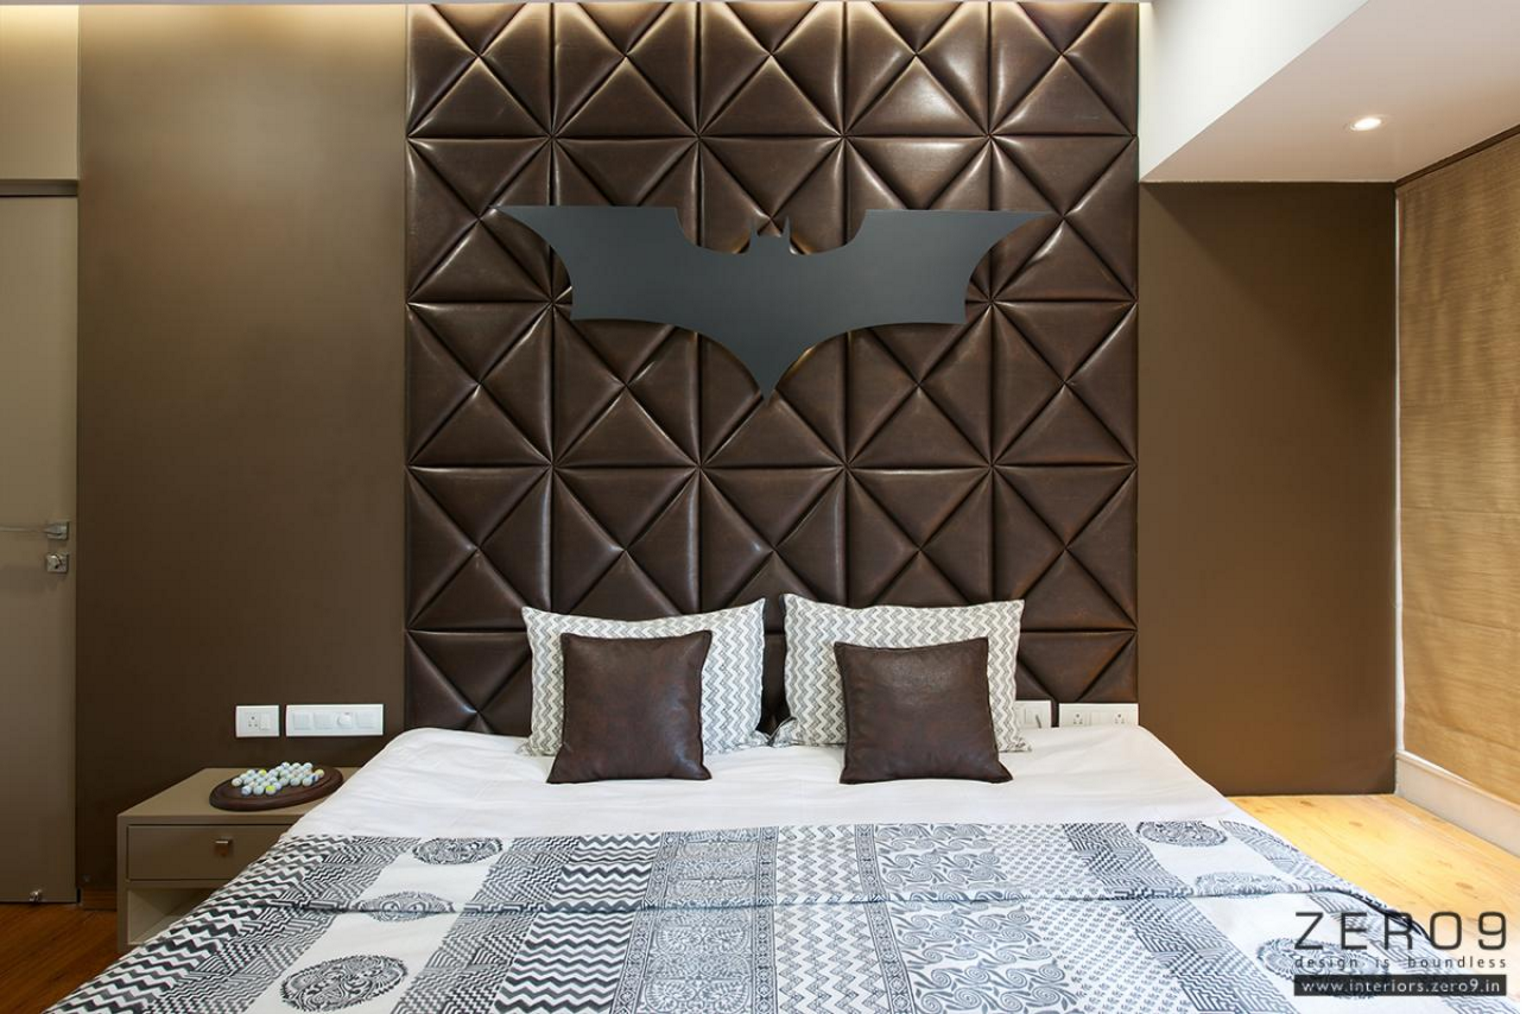 Creative Bed Back Design By Prashant Chauhan Creative Head Of Zero 9 Country Style Bedroom Interior Architecture Bedroom Bed Back Wall Design